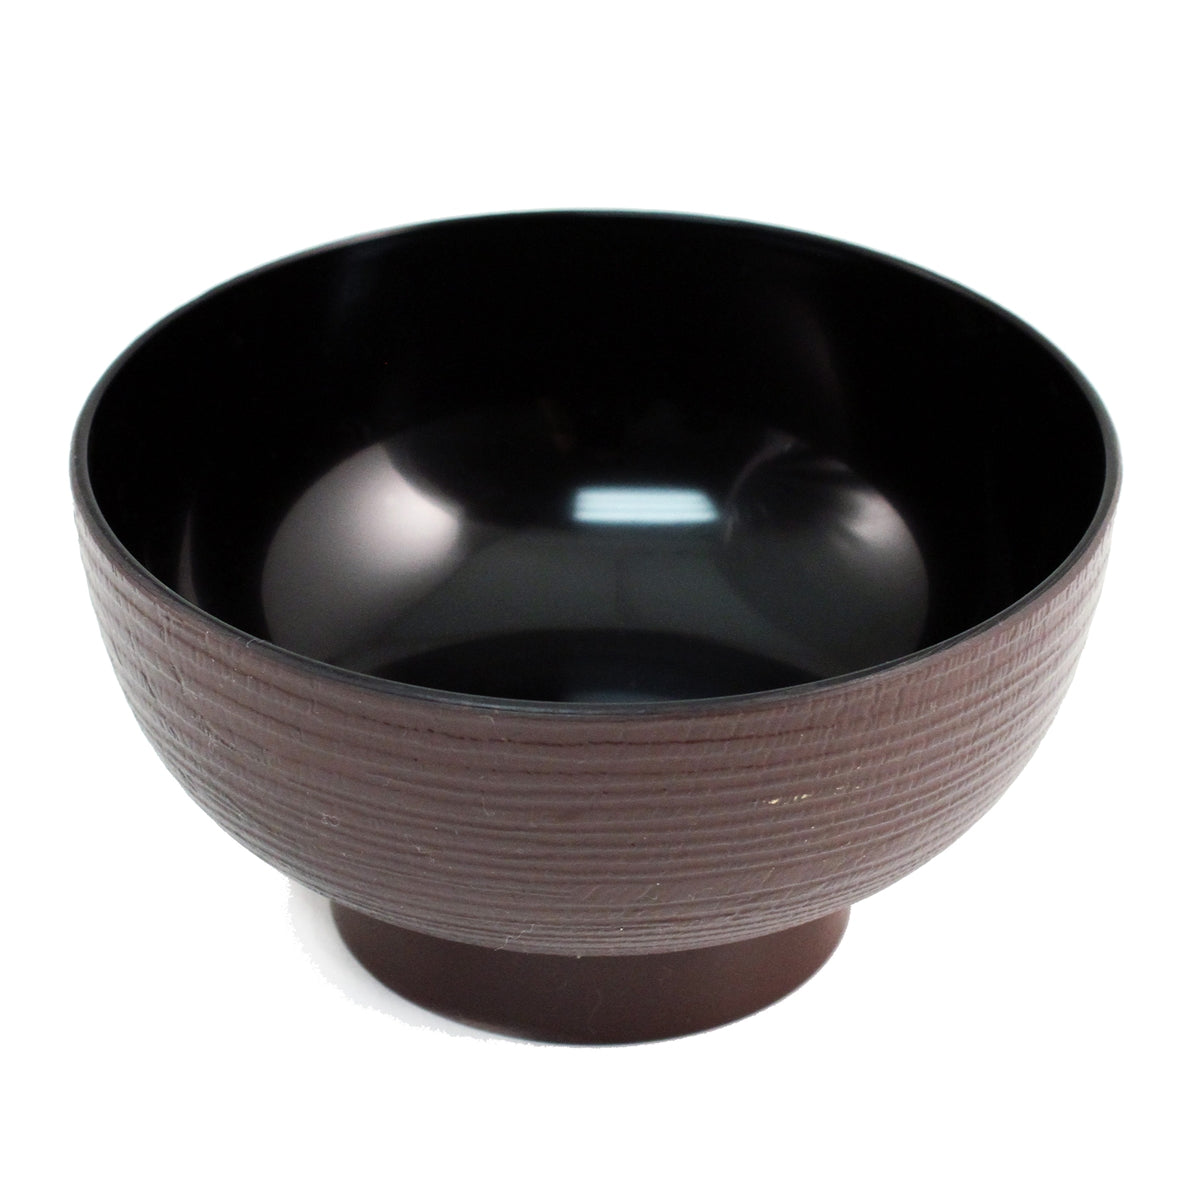 "Ransuji Soup Bowl 12 fl oz / 4.69"" dia"